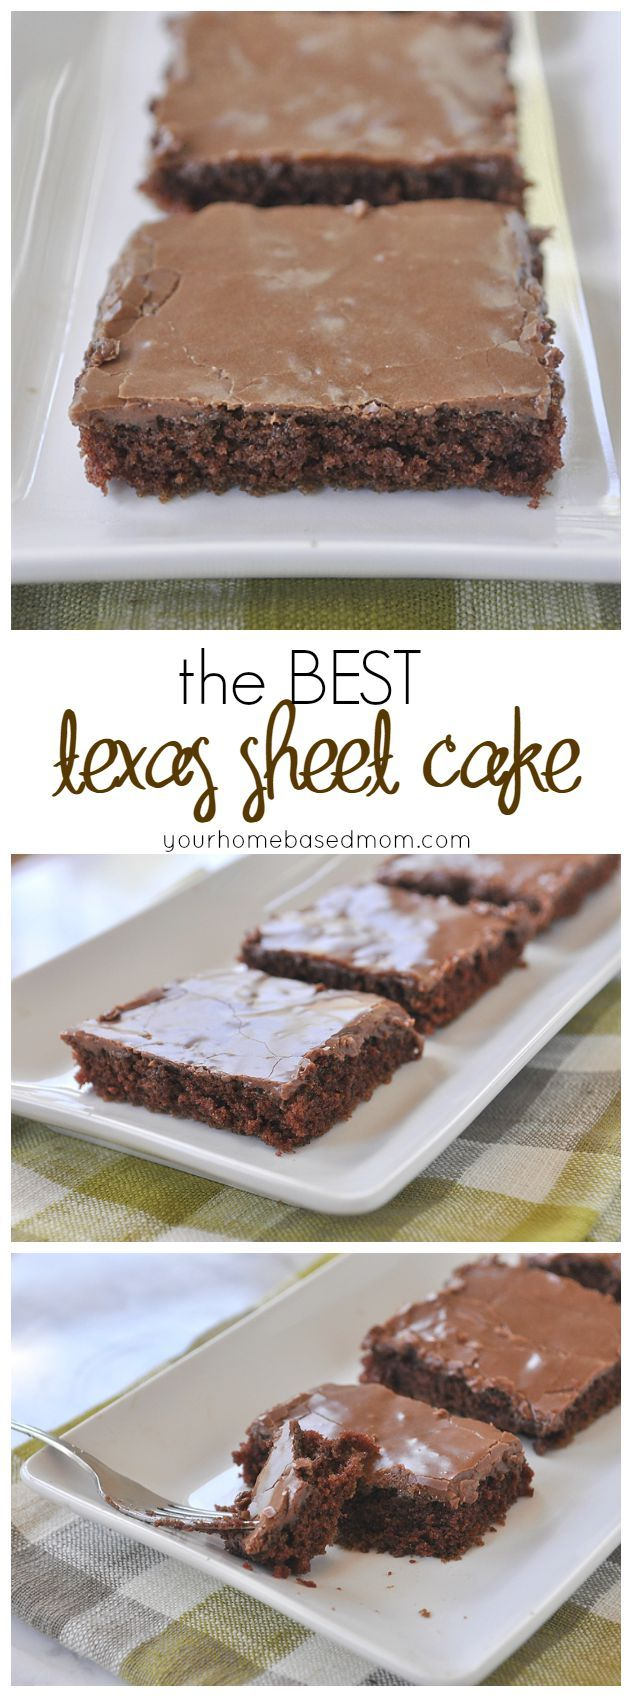 Texas Sheet Cake Recipe Yummm Pinterest Desserts Cake And